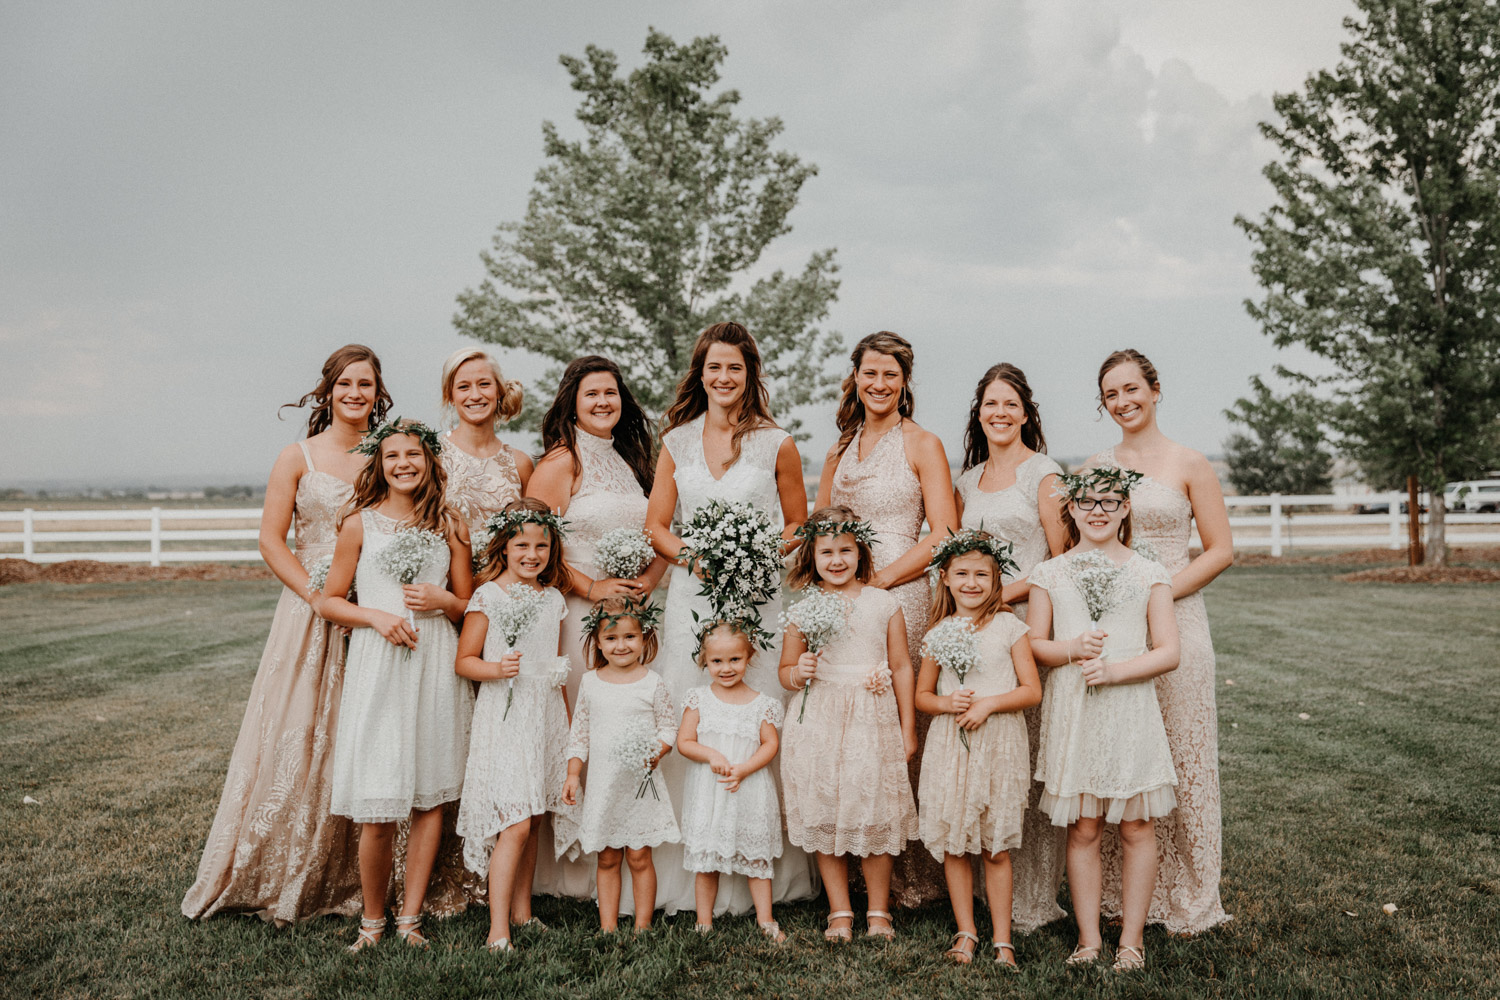 Swiss destination wedding photographer Colorado Denver Vintage Wedding bridesmaids bridal party